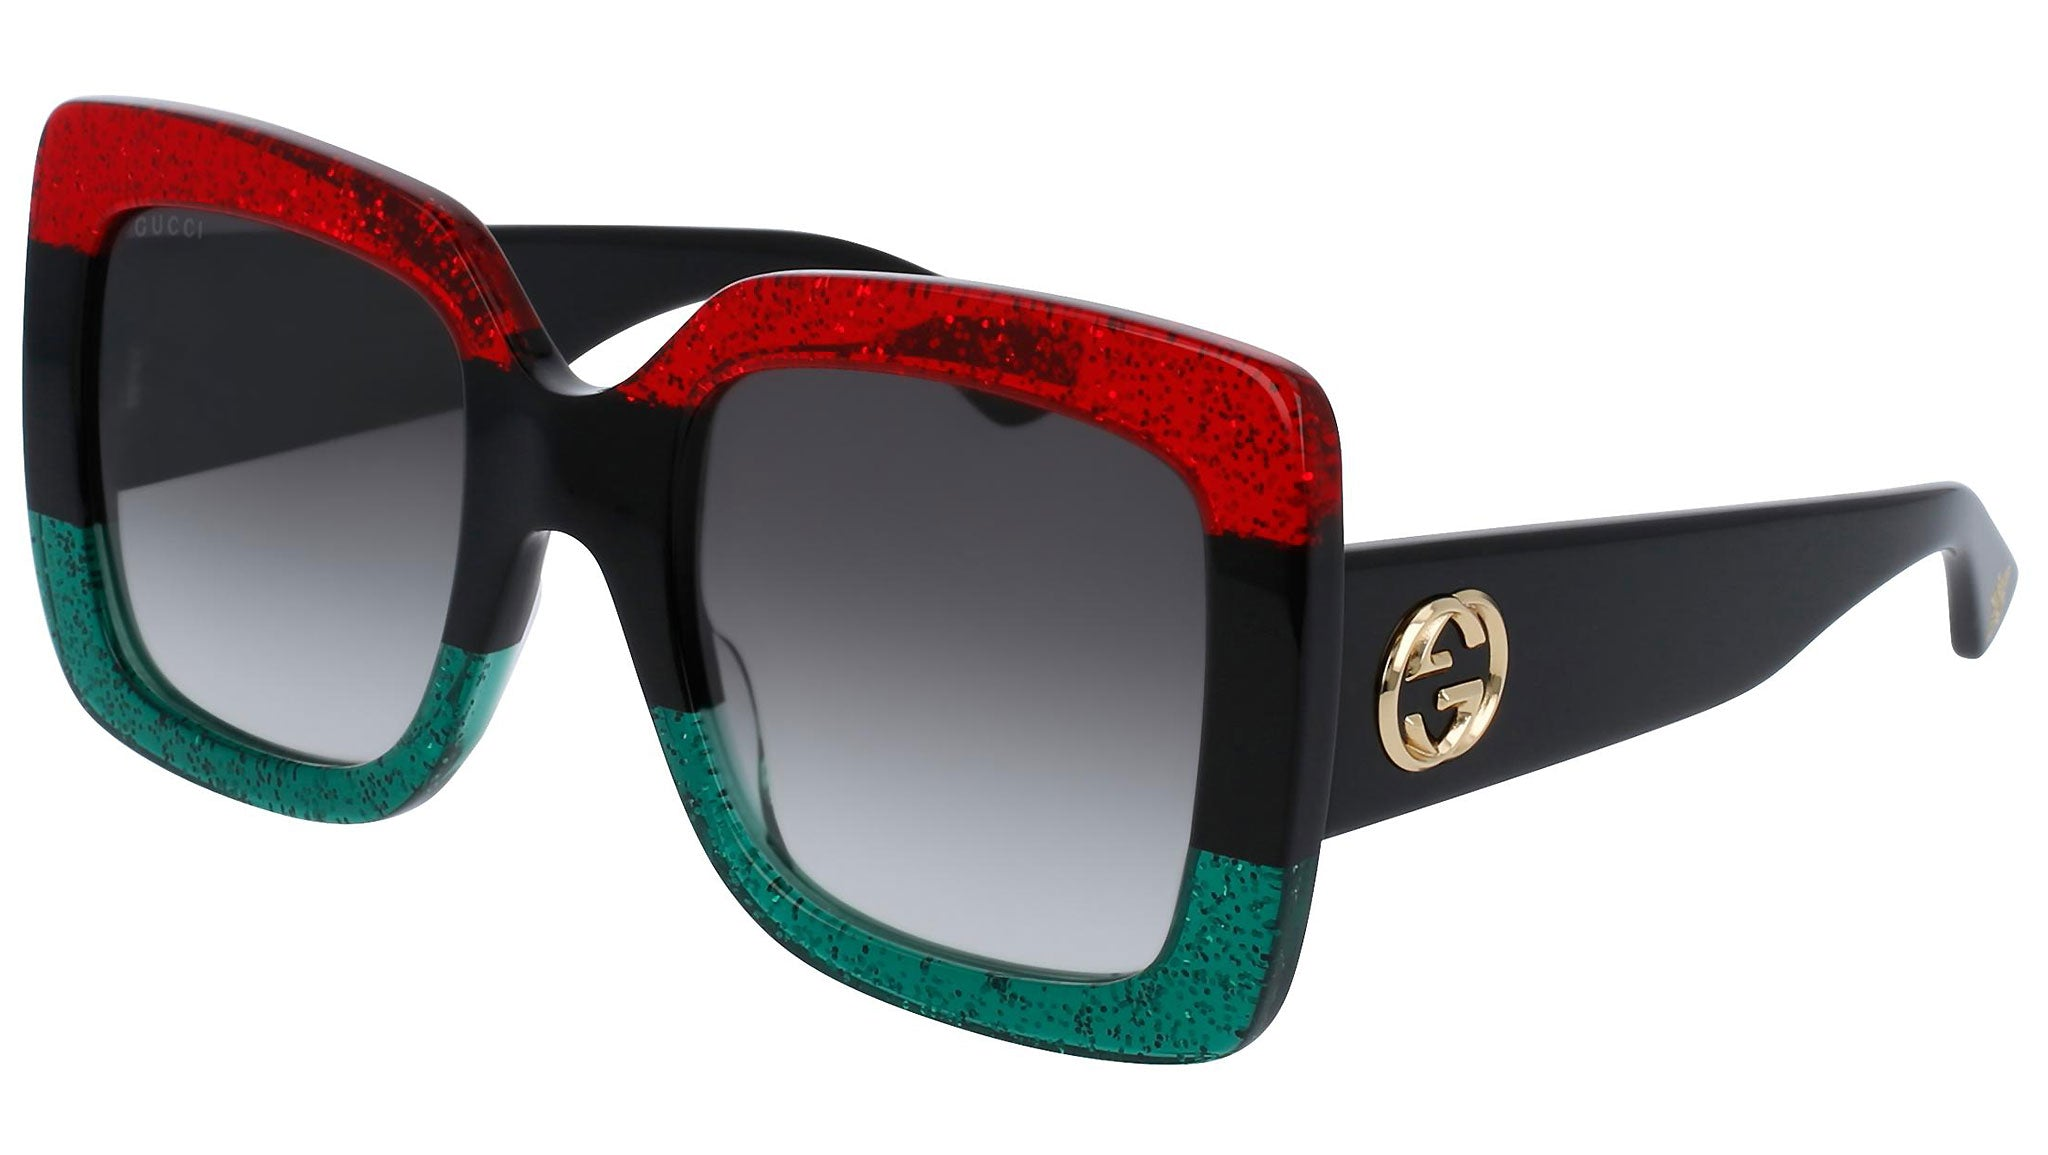 GG0083S green red and shaded grey